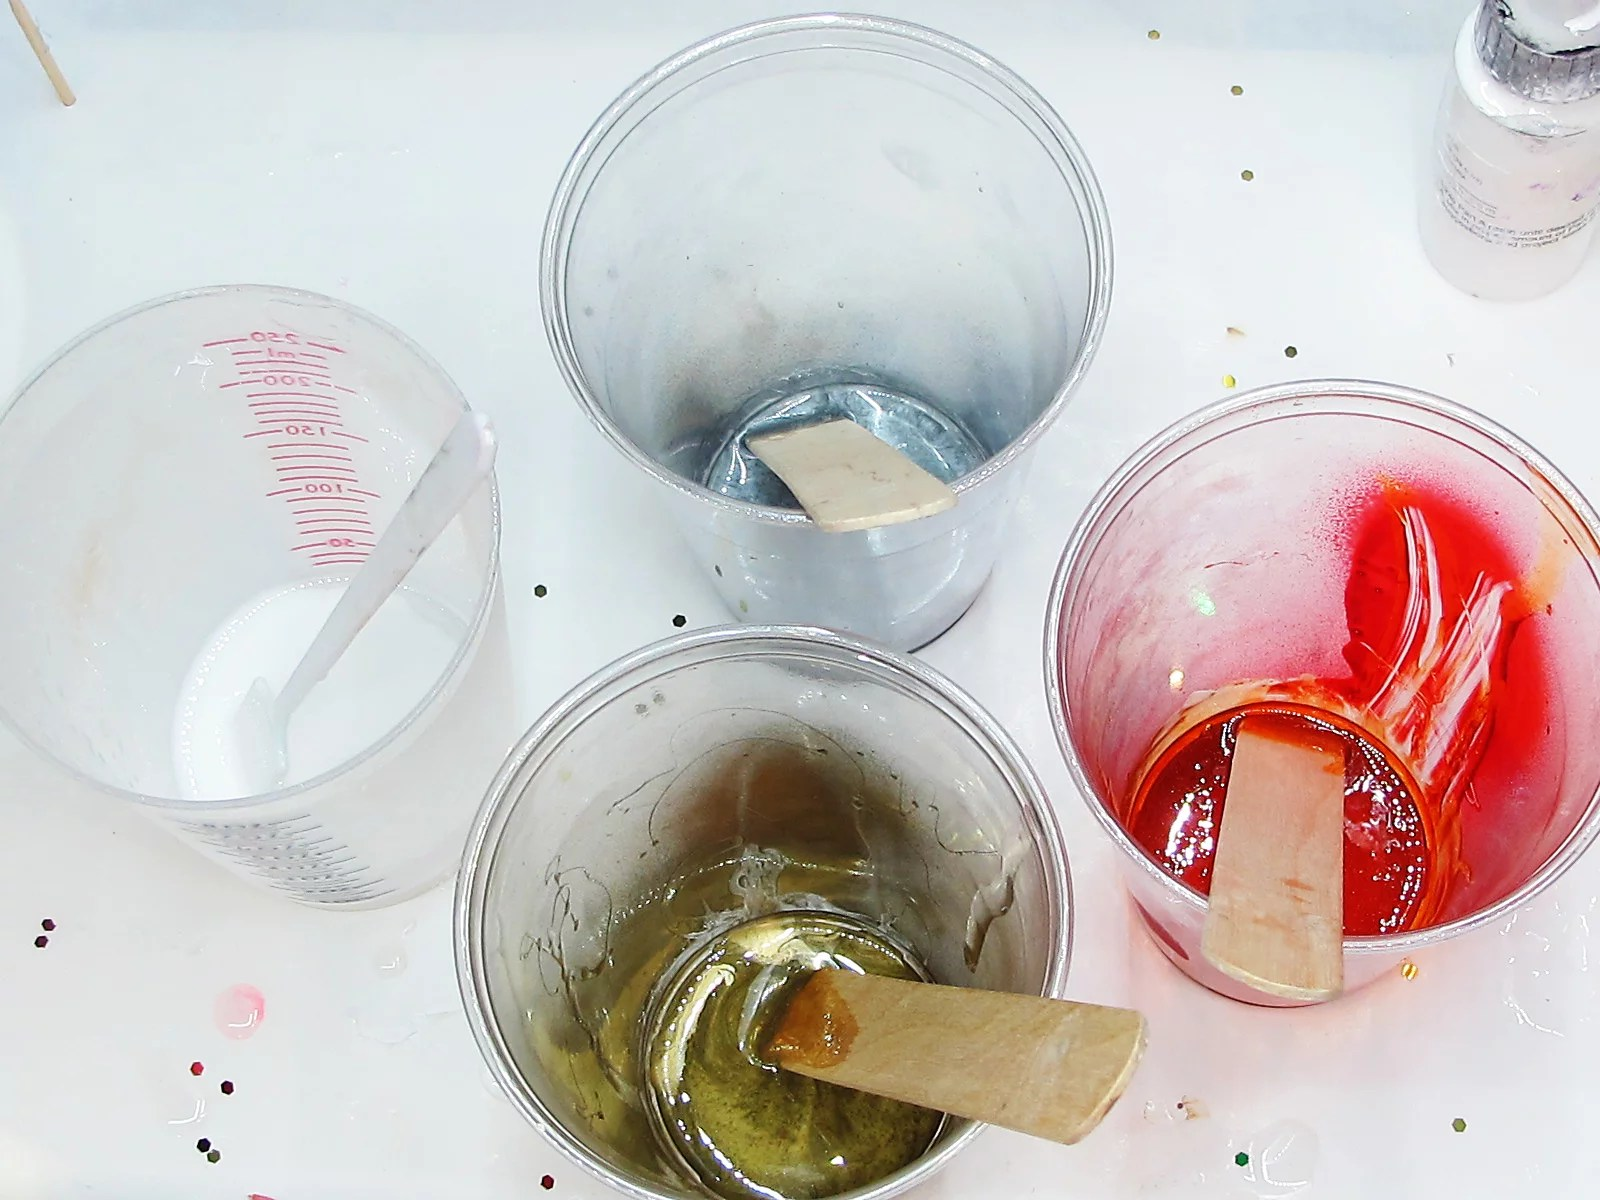 colored resin in cups